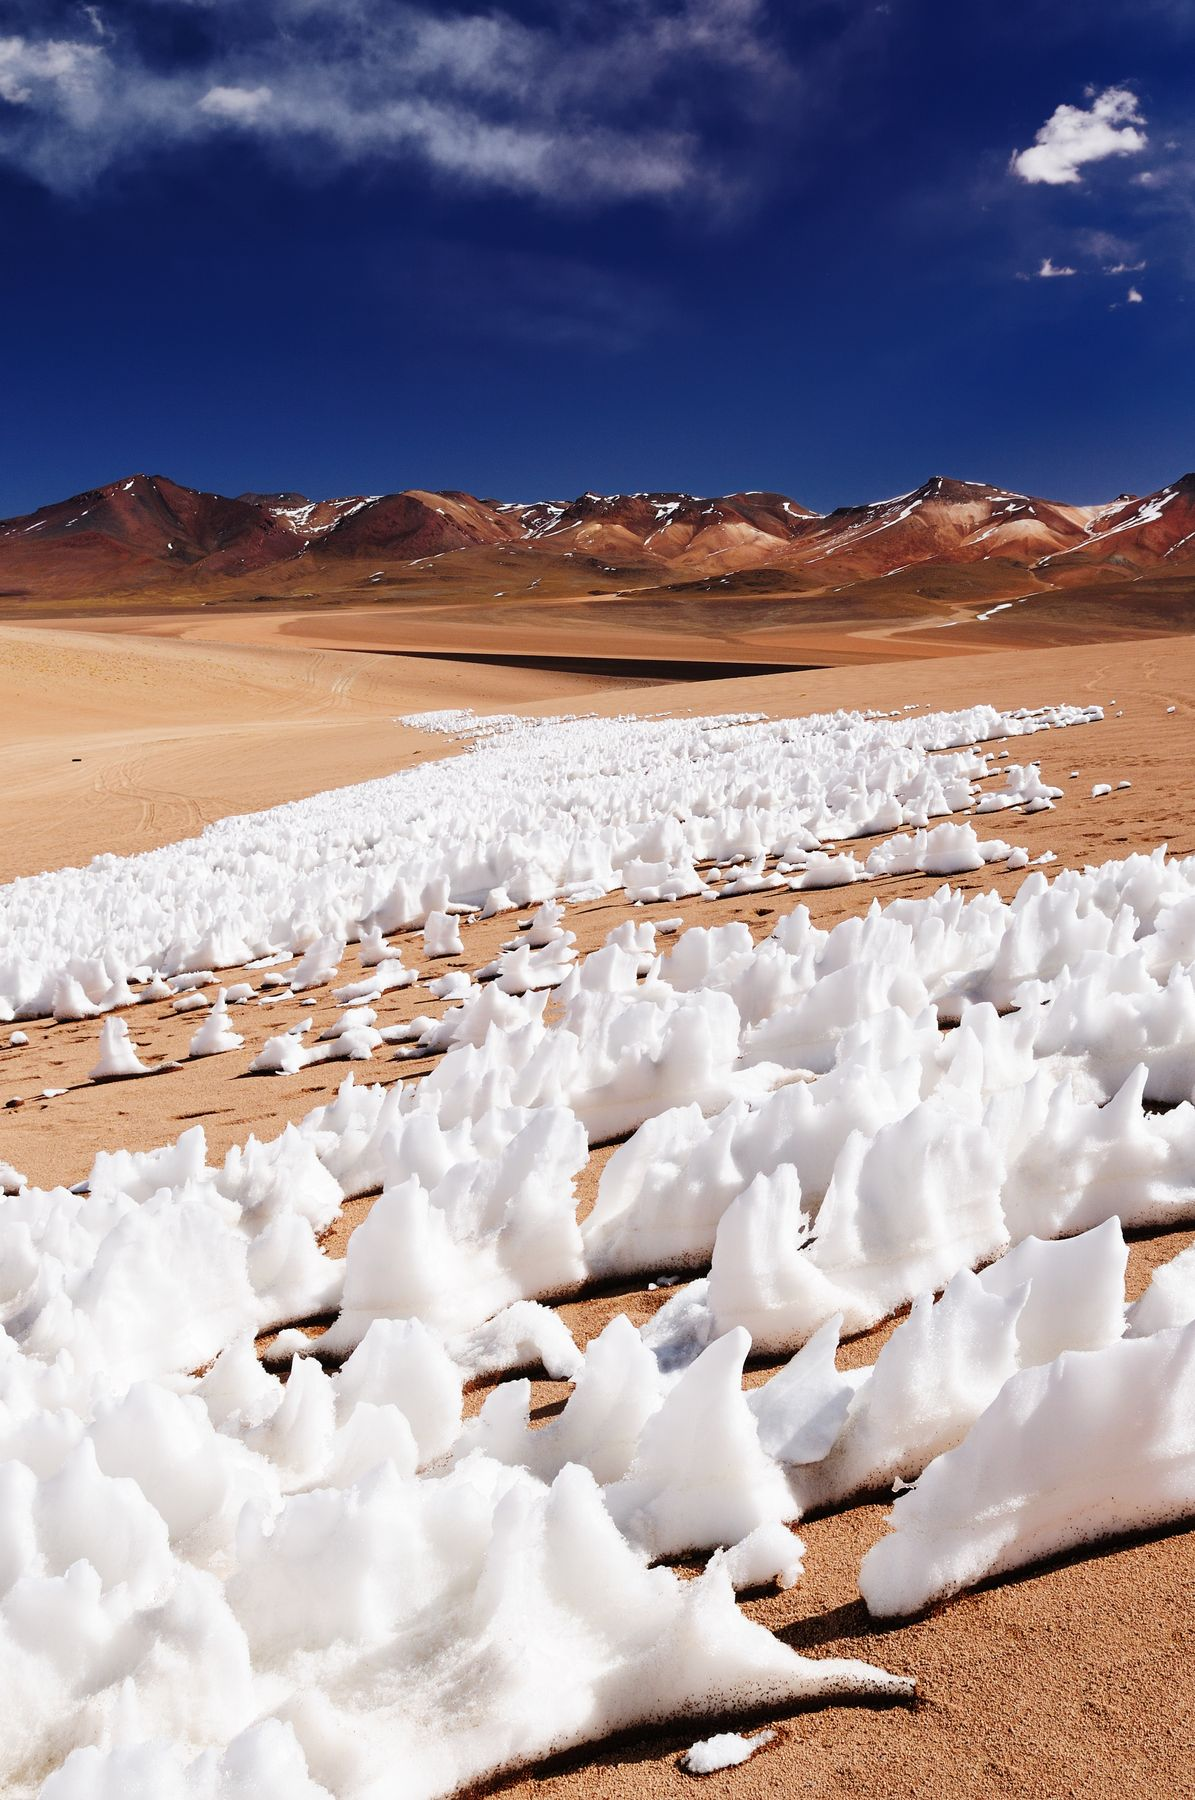 Salar de Uyuni, Bolivia - 10 breathtaking natural wonders of the world